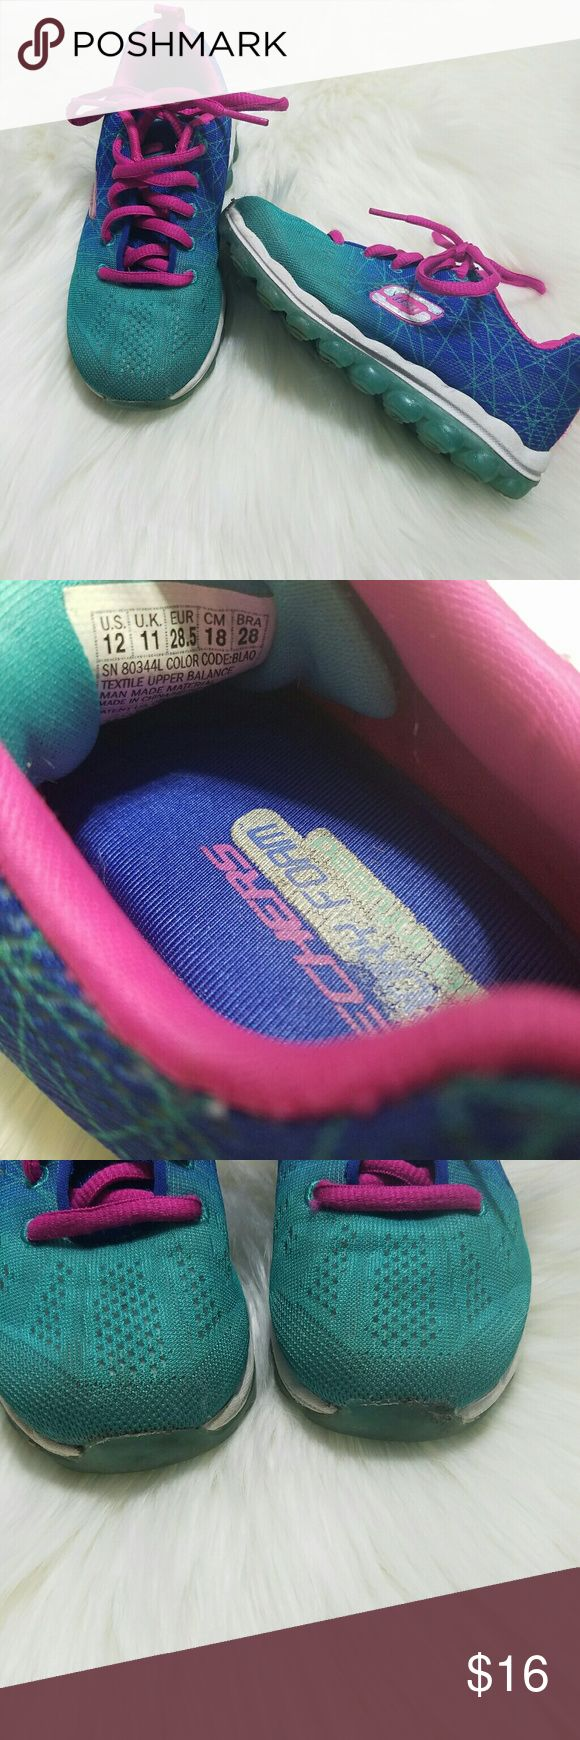 Girls Skechers Sneakers Memory foam Girls skechers size 12. Overall good condition, slight wear on the fronts. Shown in the 3rd photo Skechers Shoes Sneakers